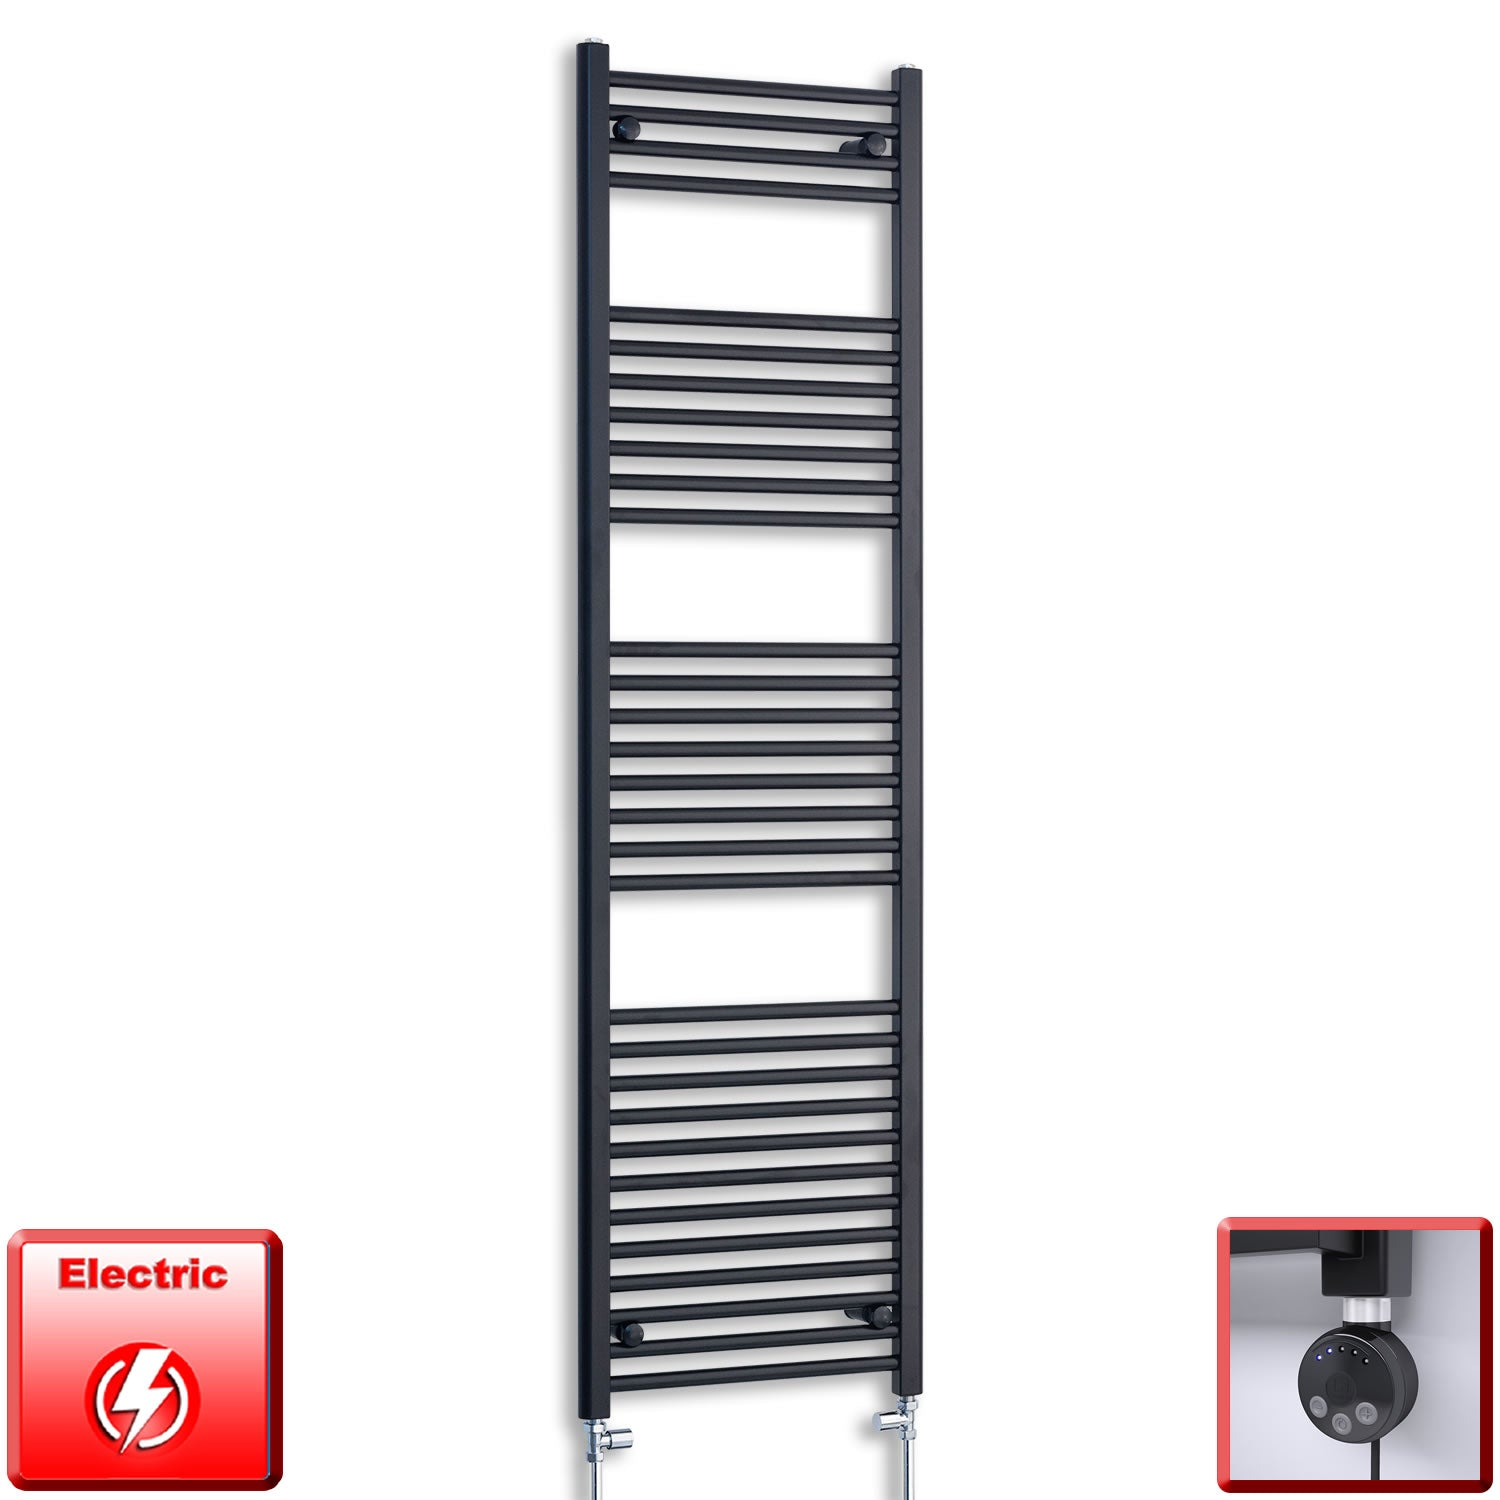 600mm Wide 1800mm High Pre-Filled Black Electric Towel Rail Radiator With Thermostatic MEG Element